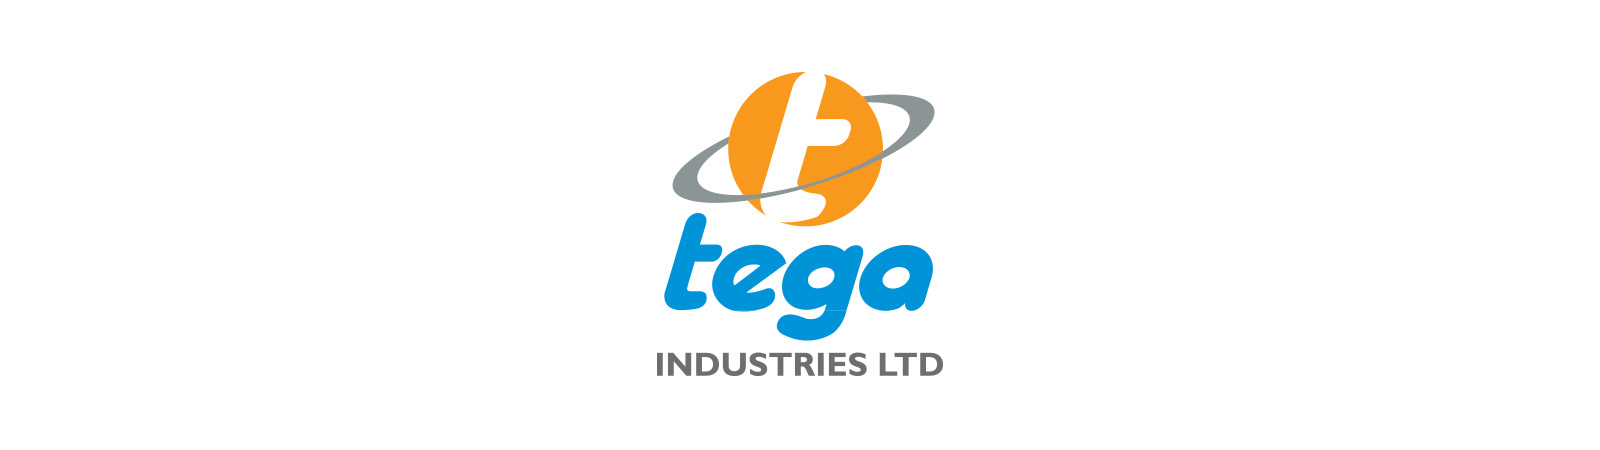 Tega Industries Ltd. Logo Image